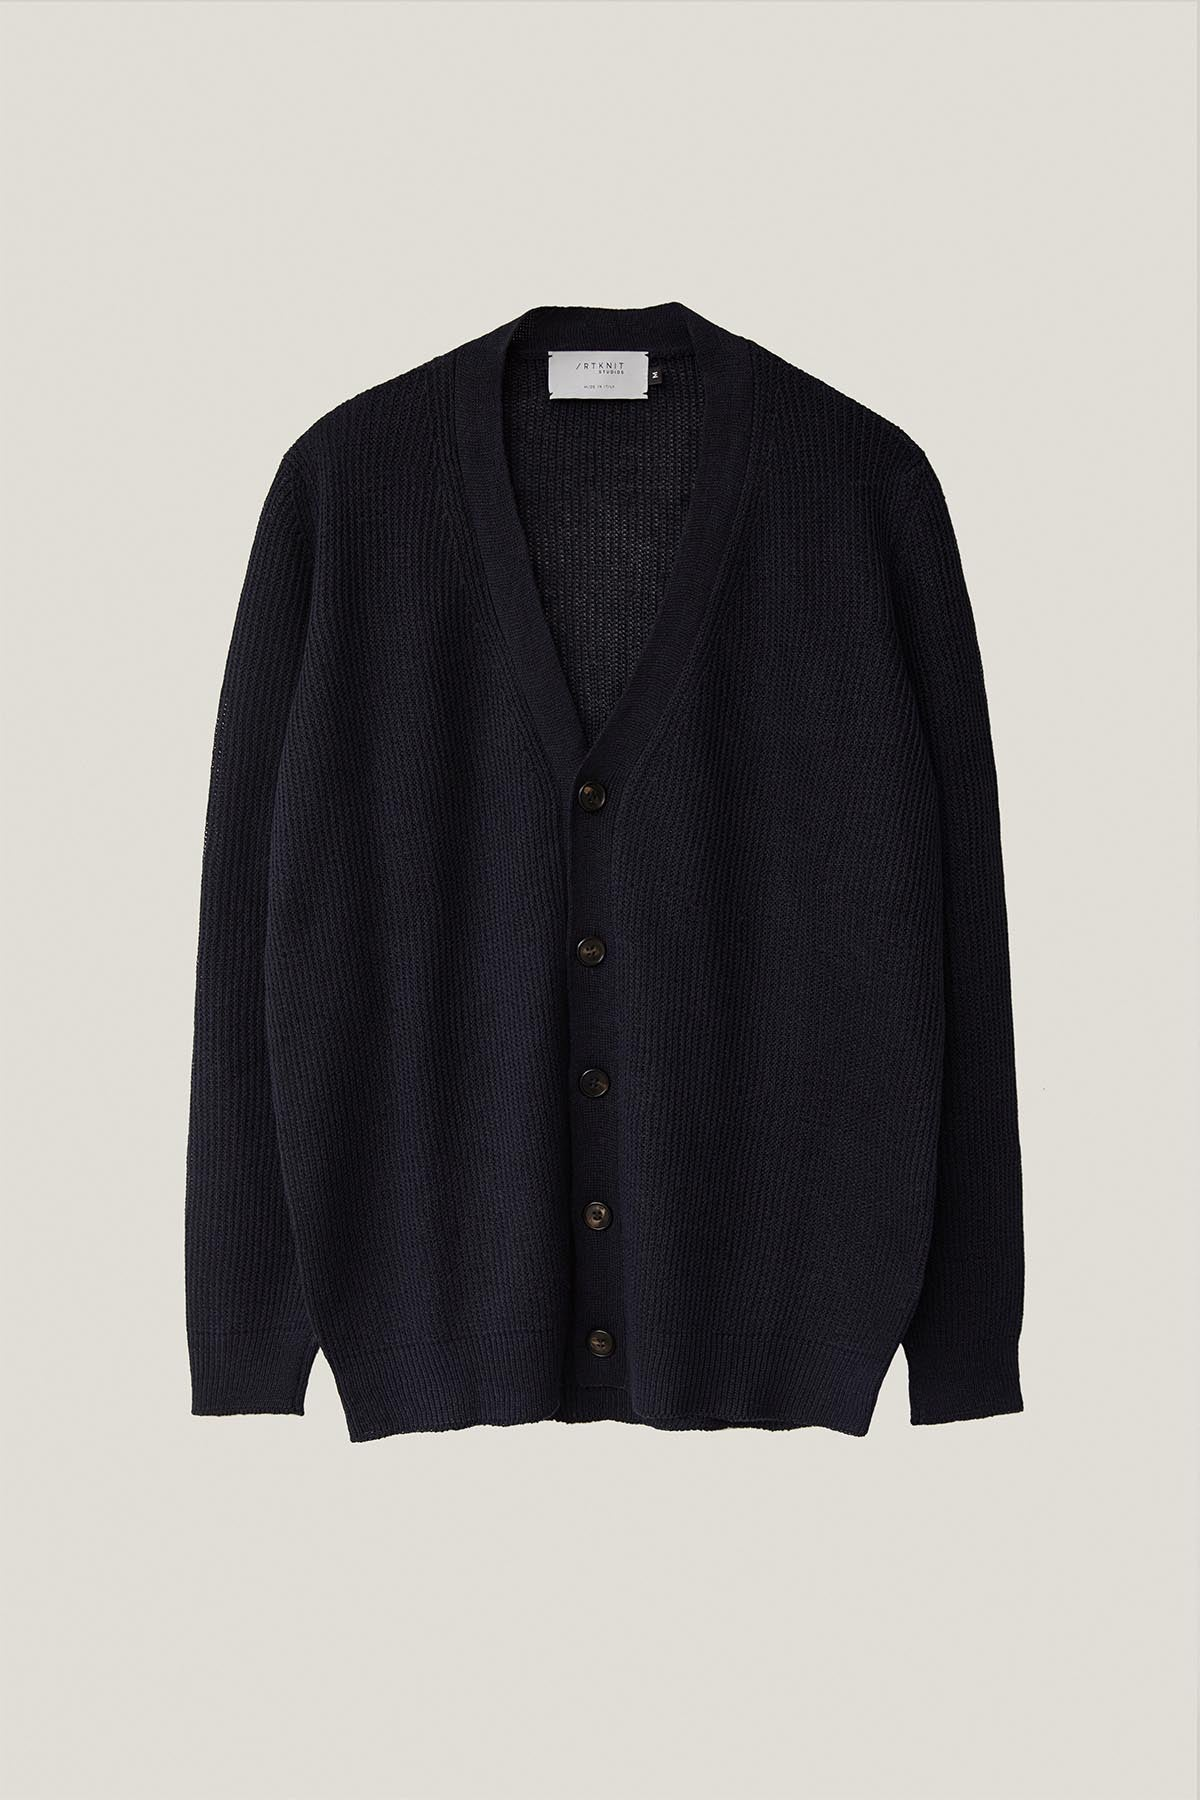 The Ribbed Linen Cardigan - Blue Navy